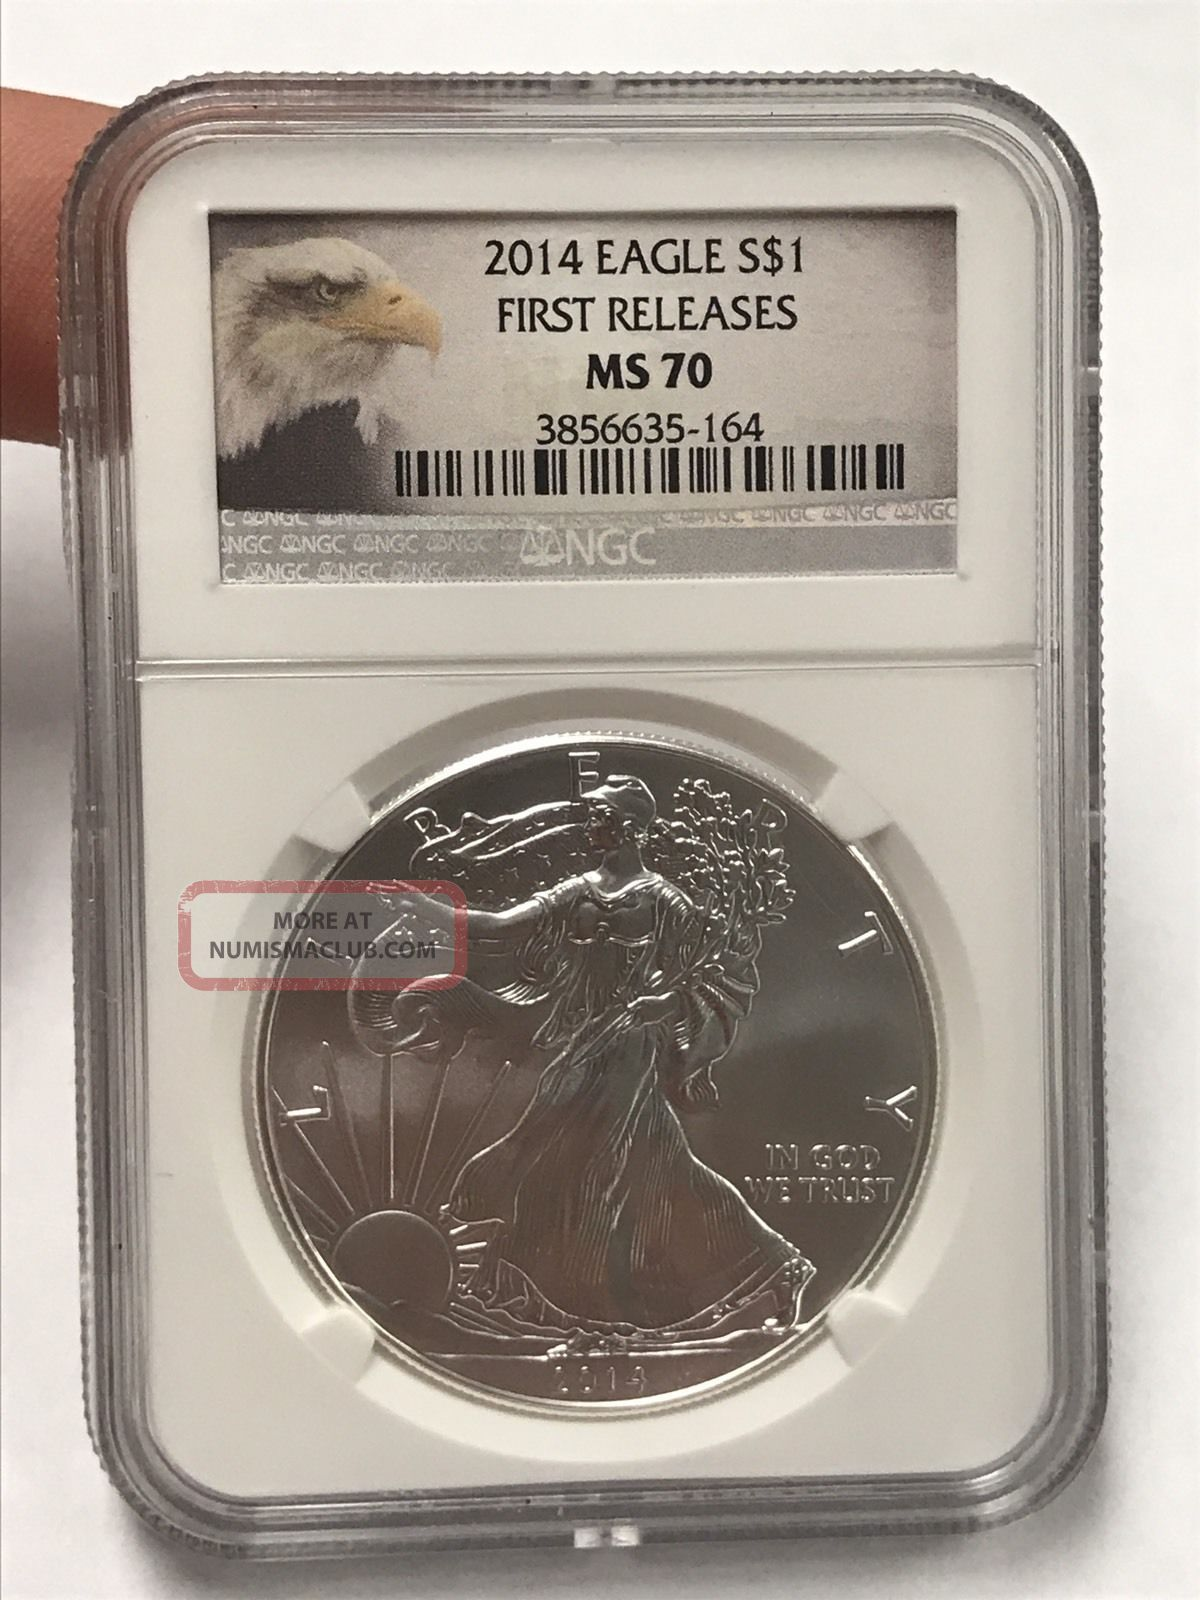 2014 Silver Eagle $1 First Release Ms 70 Ngc Silver photo